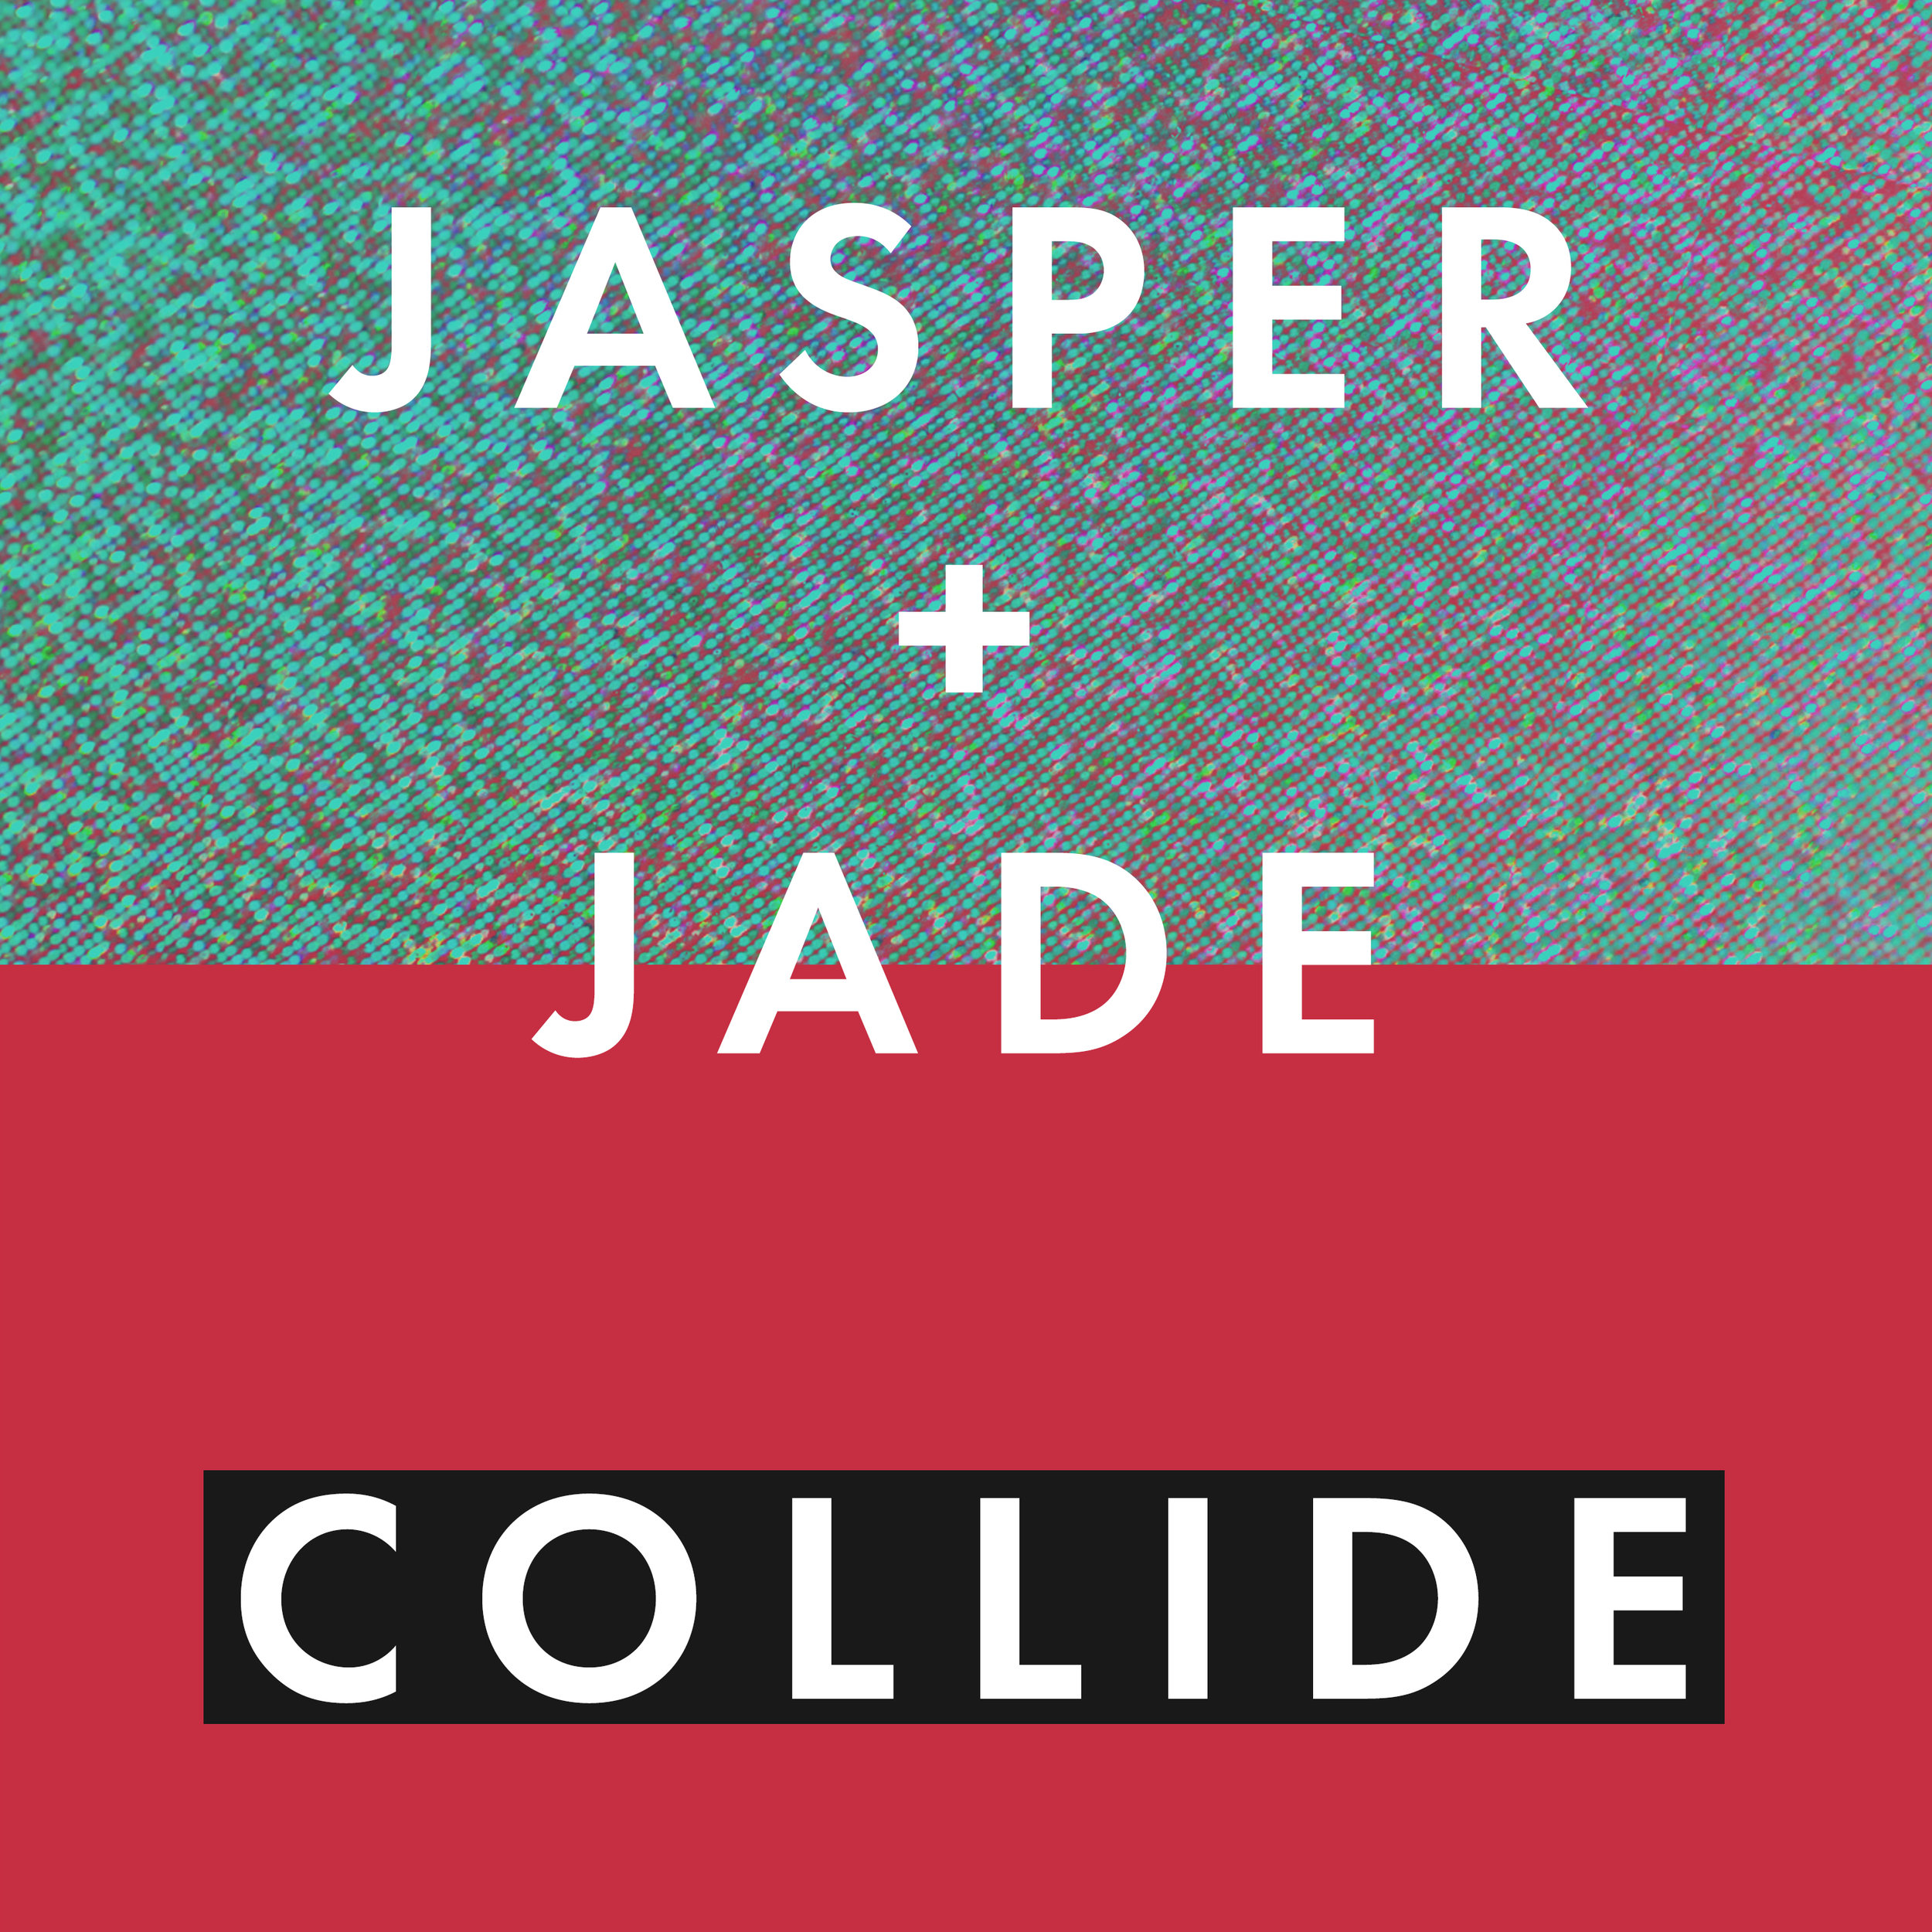 Jasper+Jade_Collide_Single_3000x3000.jpg